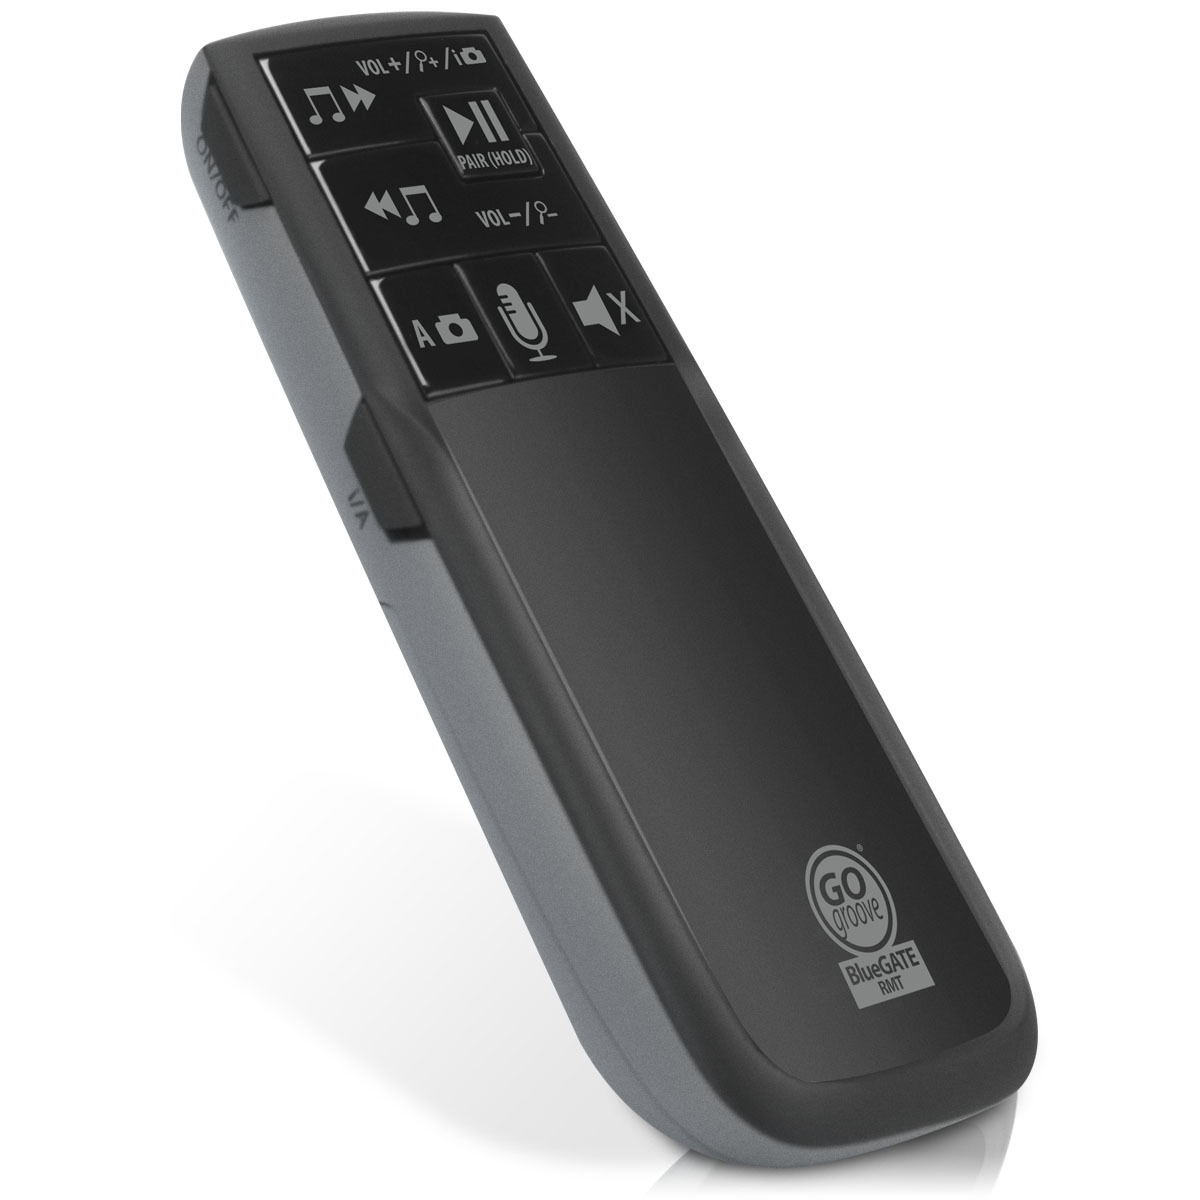 ACCESSORY POWER Bluetooth Multimedia Remote Control for Playlist Streaming , Controlling Cameras and Audio Playback by GOgroove